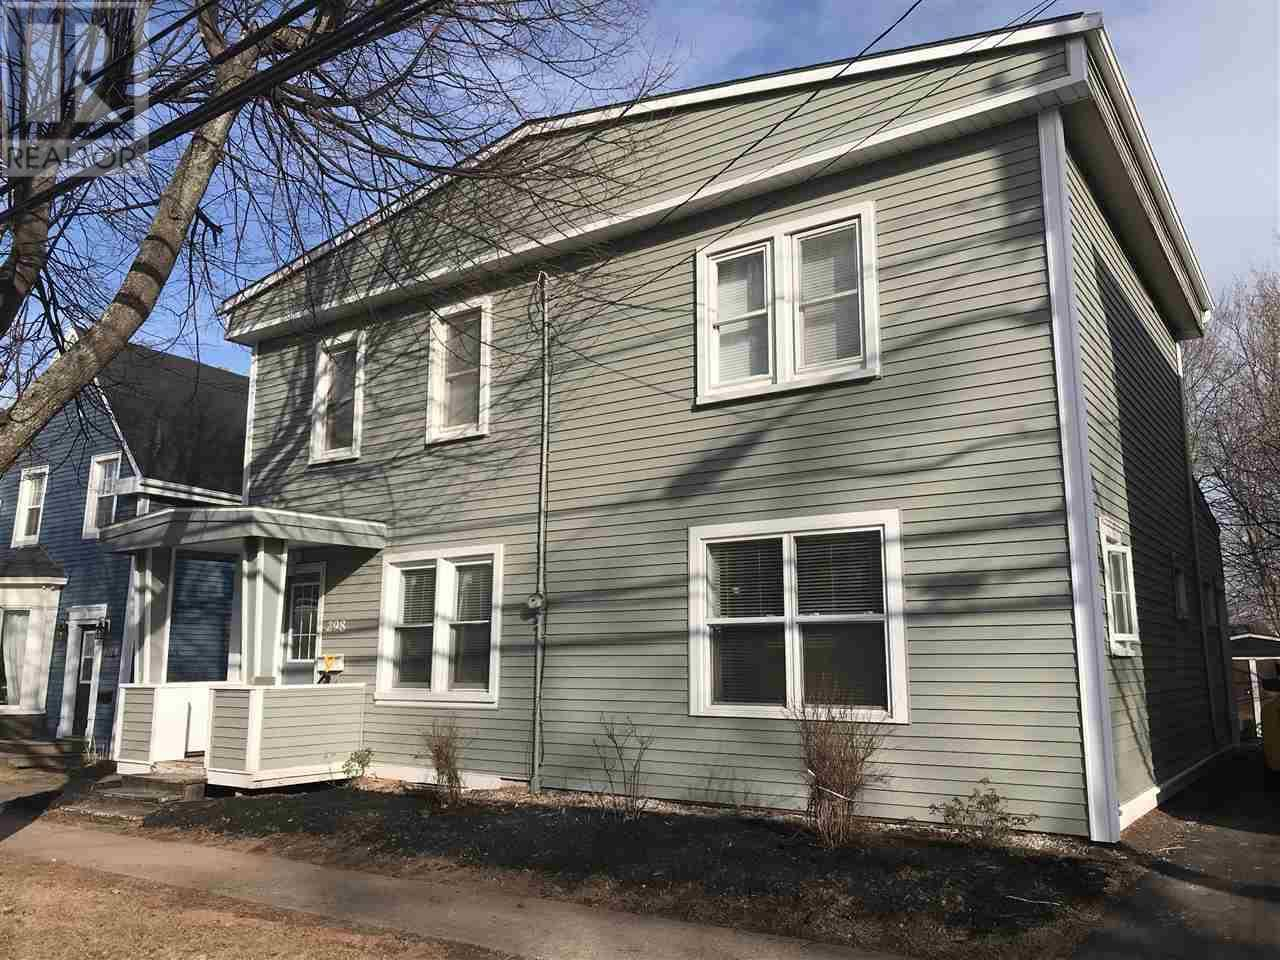 House for sale at 298 Fitzroy St Charlottetown Prince Edward Island - MLS: 202003991